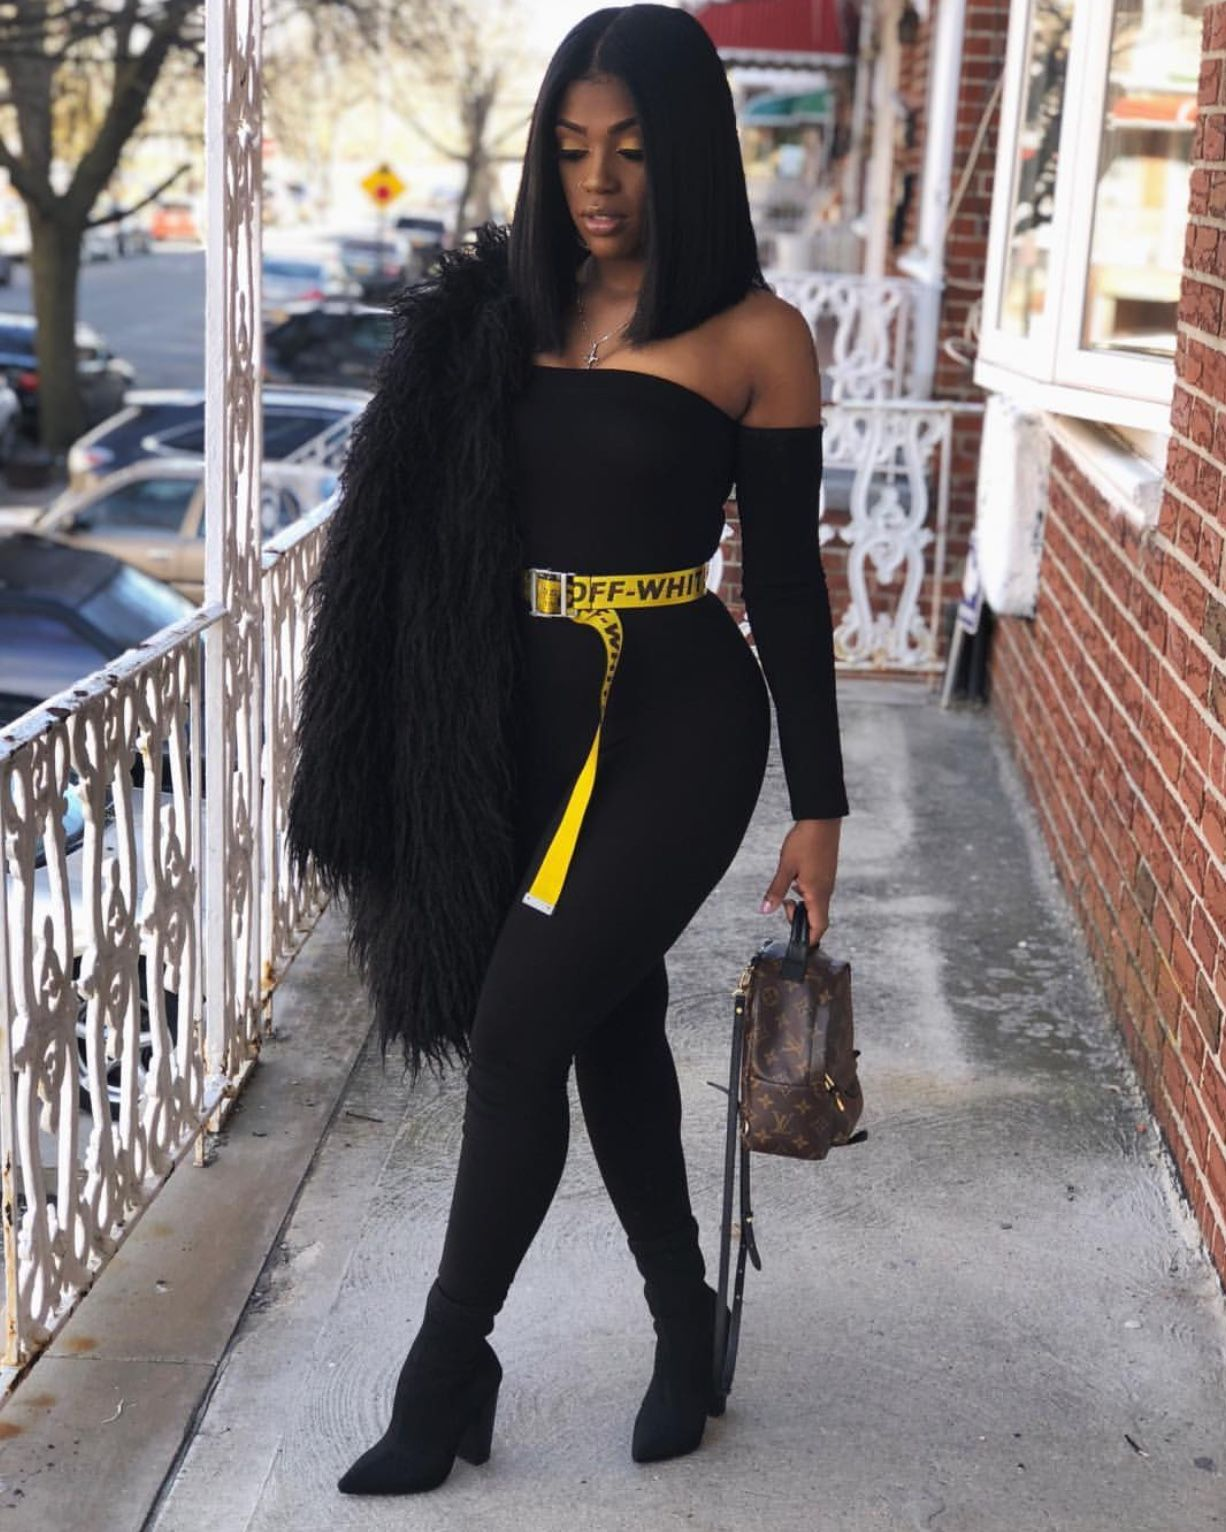 Black Girl Fashion: @Dadolldouse @Essenciabanks